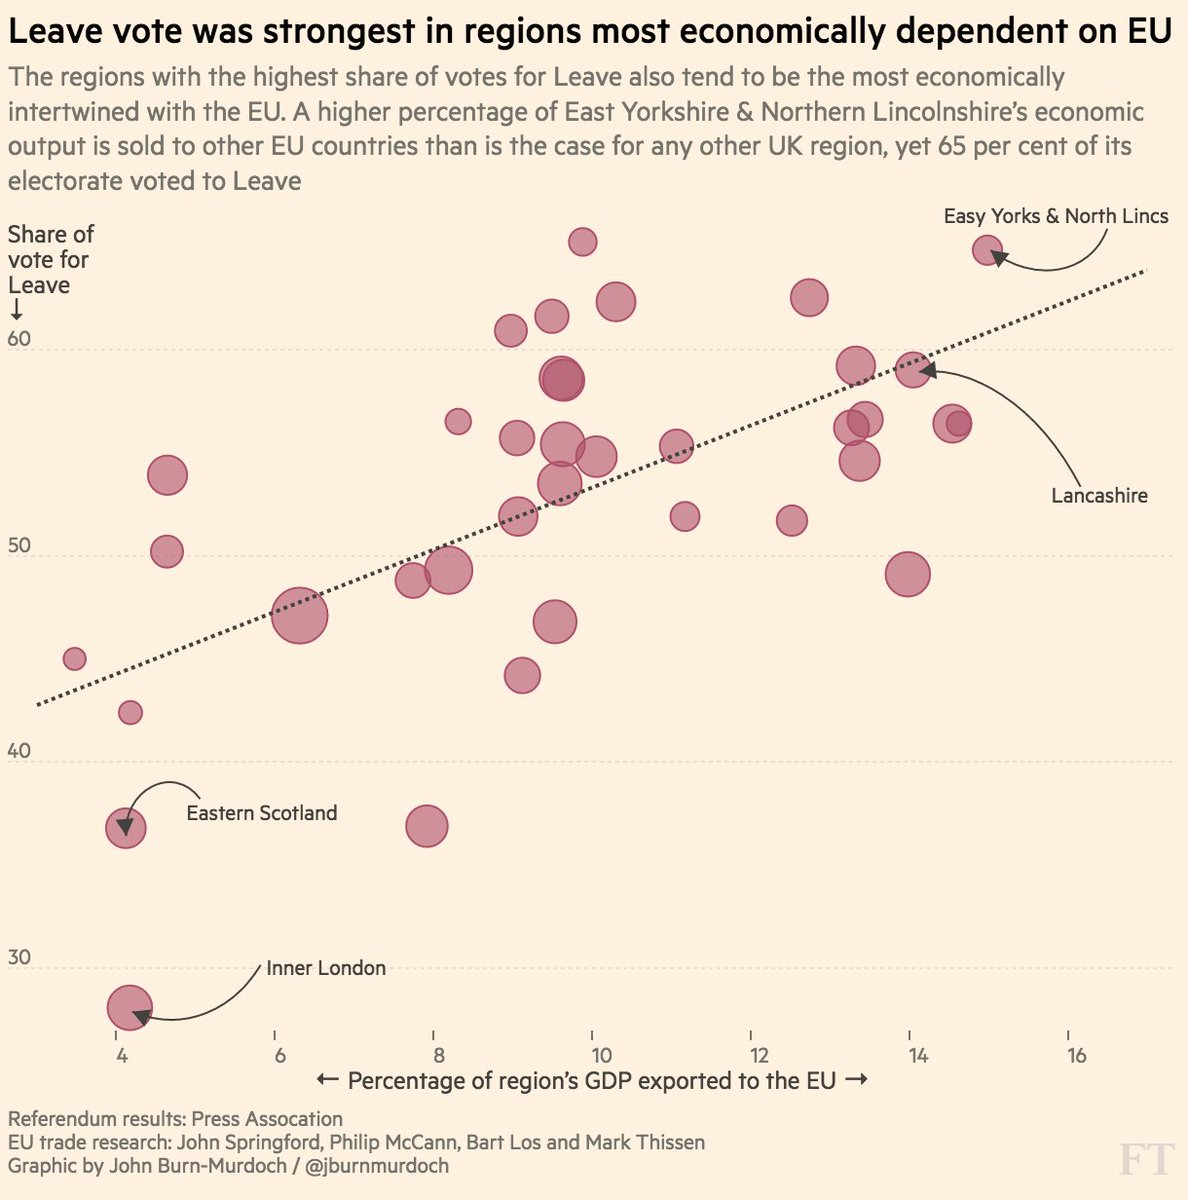 Regions with the biggest votes for Leave are also the most economically dependent on the EU https://t.co/vL2D3SkEIP